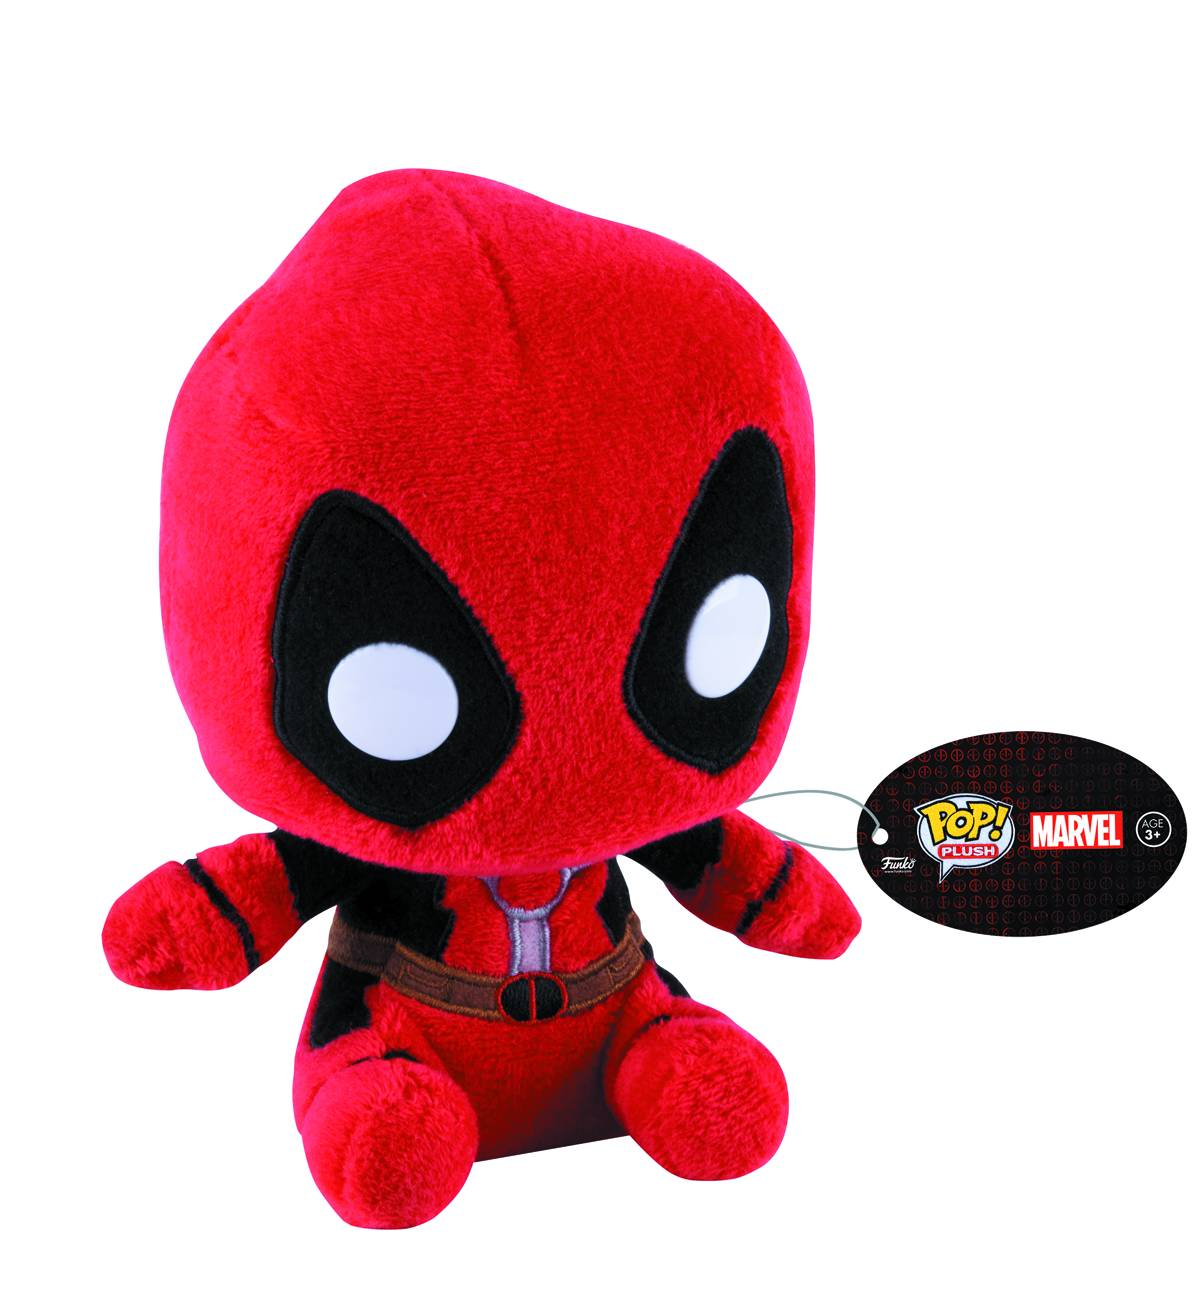 POP MARVEL DEADPOOL REGULAR PLUSH